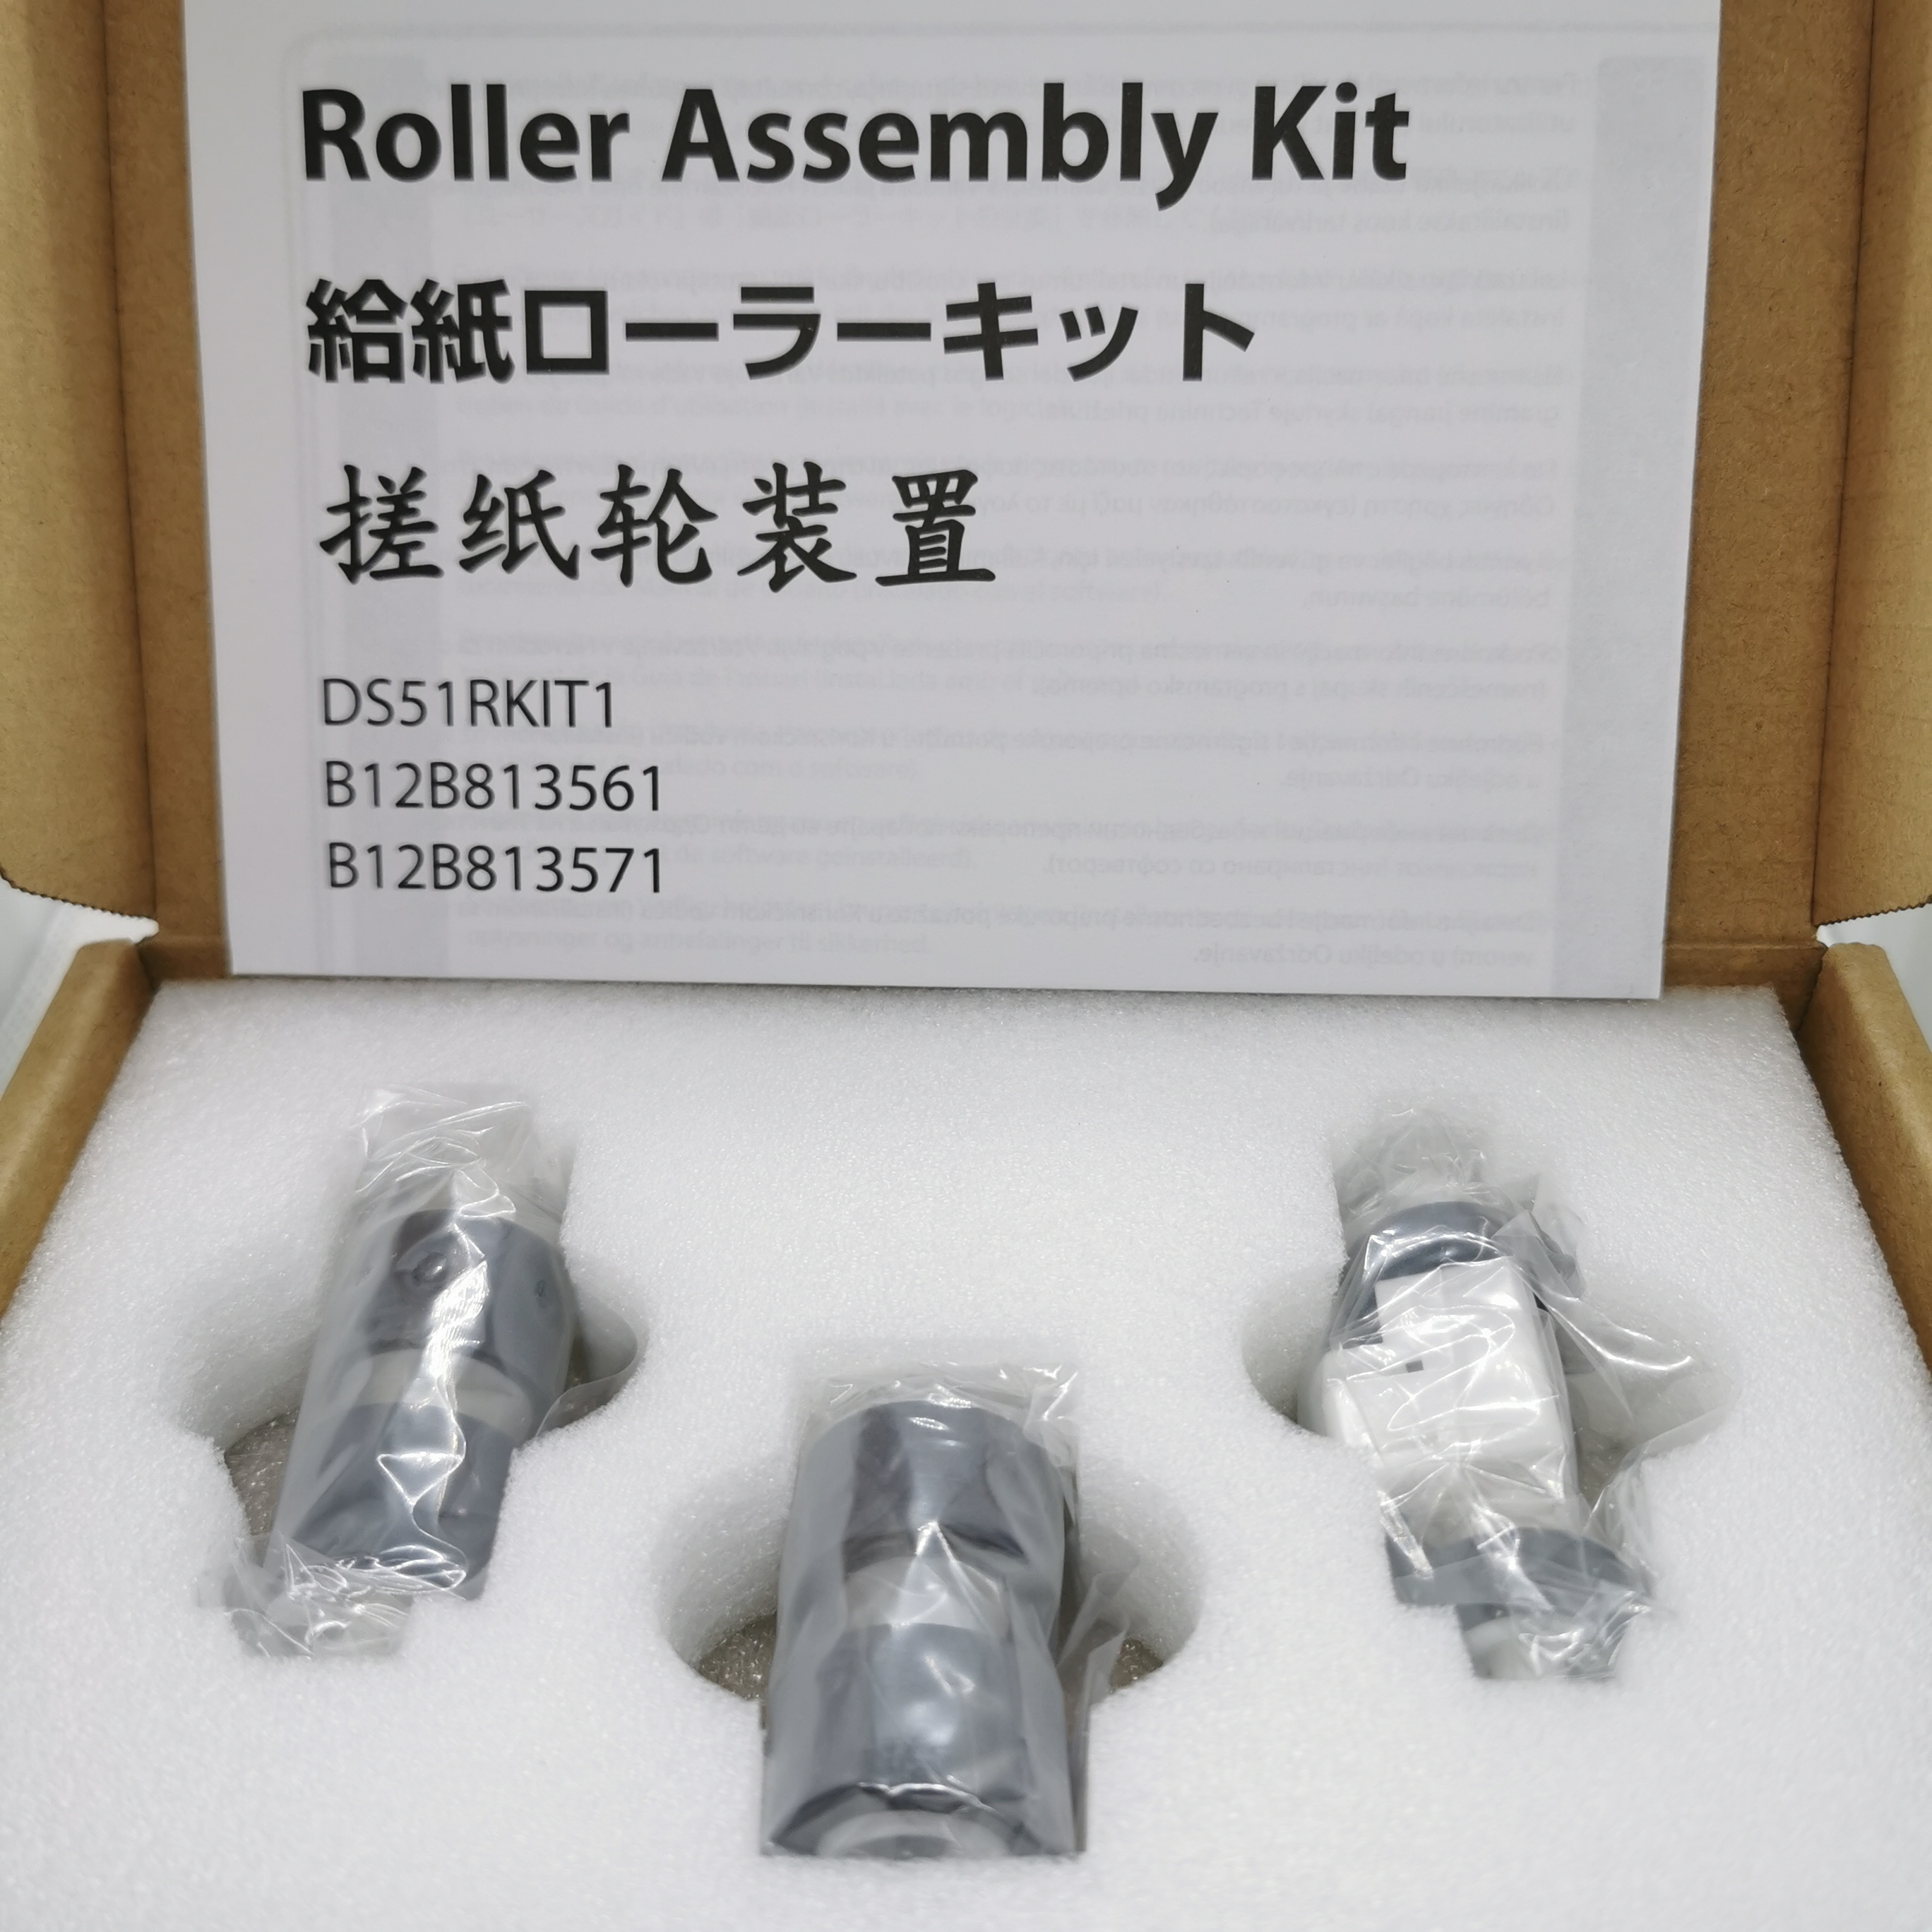 Pickup Feed Separation Roller Assembly Kit For Epson WorkForce DS-510 DS-520 DS-560 DS-410 Scanner B12B813561 B12B819381